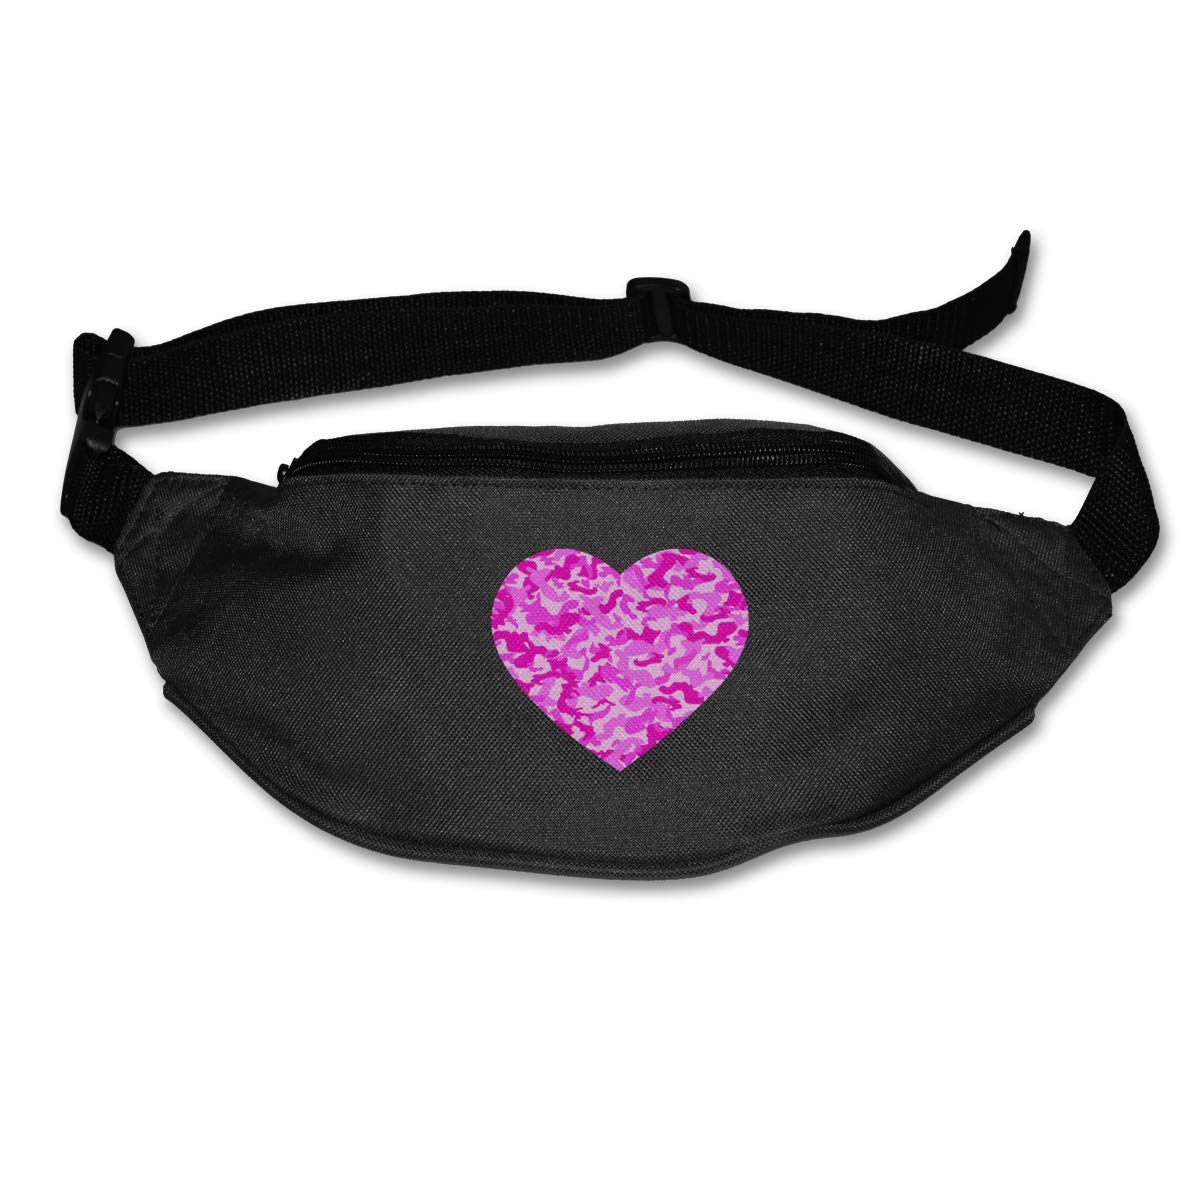 Pink Camo Love Sport Waist Pack Fanny Pack Adjustable For Hike